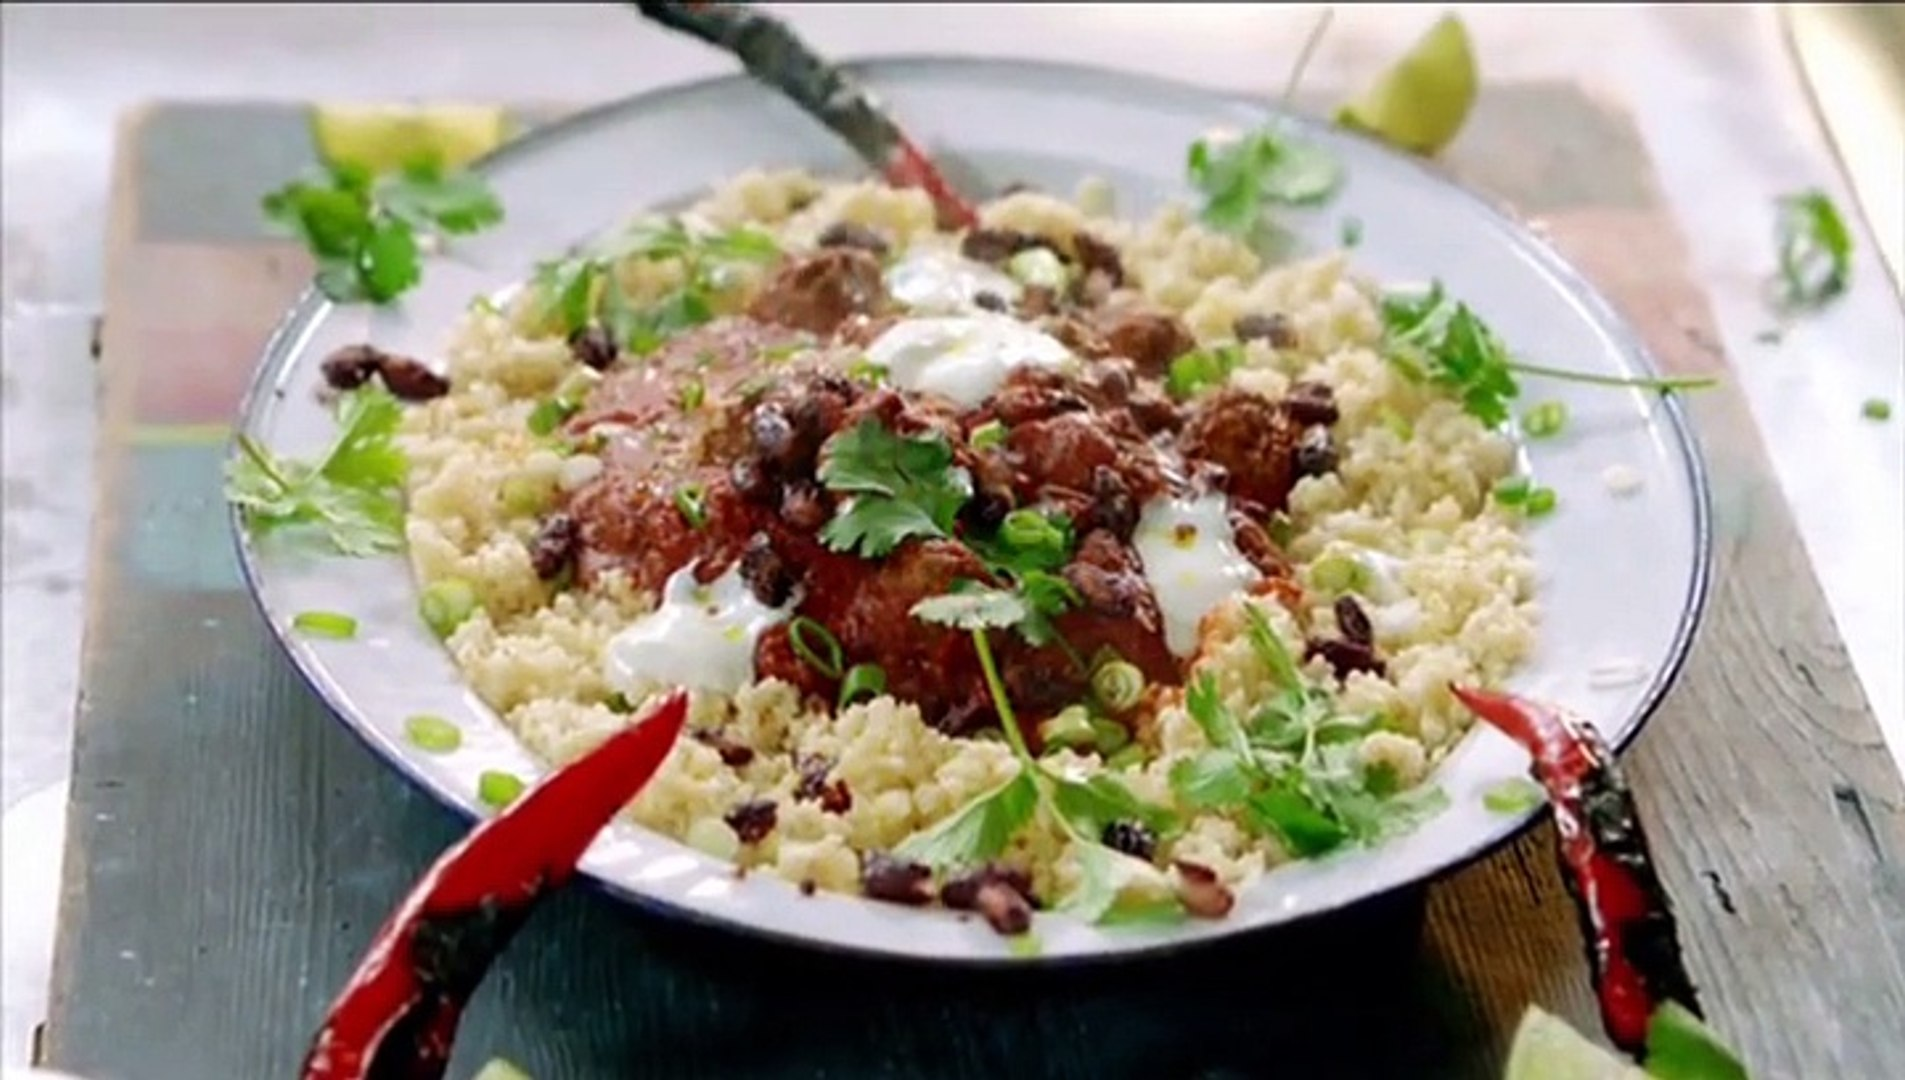 Jamie Oliver 15 Min Küche Jamie Oliver S 15 Minute Meals S01e01 Chilli Con Carne Meatballs